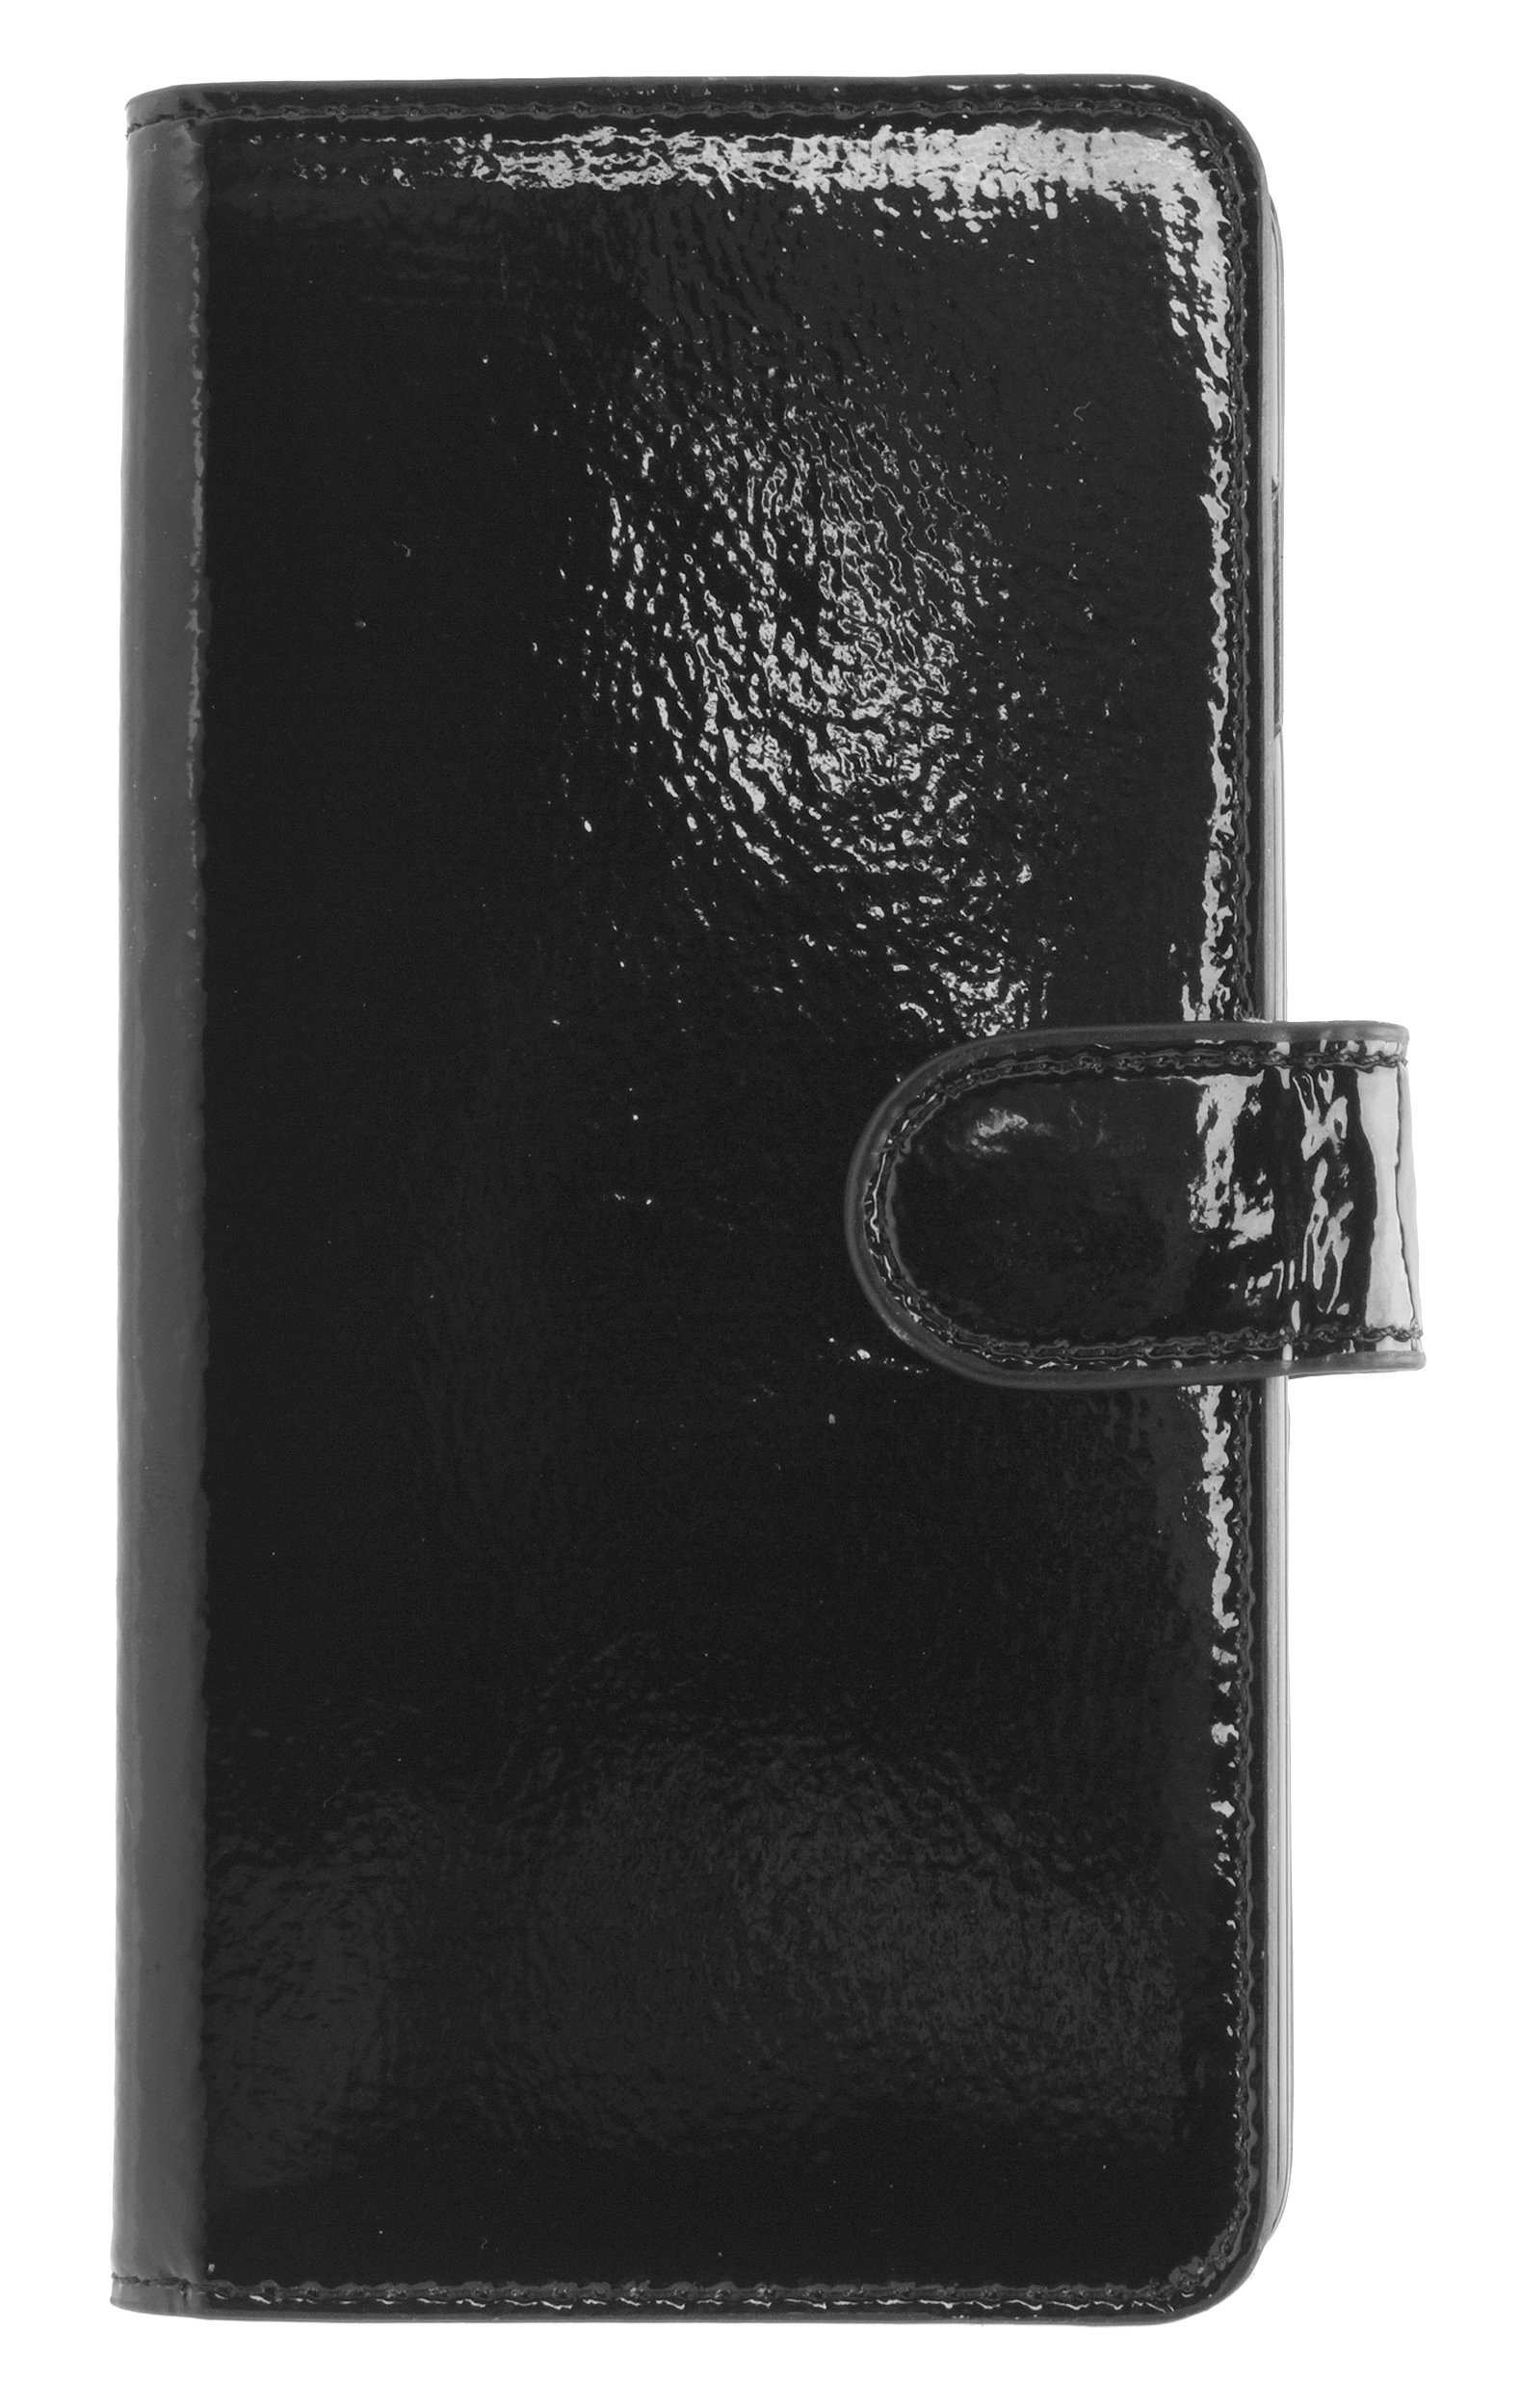 MOBILELUXE Patent Leather Wallet Phone Case for iPhone 6 Plus & 6s Plus - Patent Black/Fuchsia by MOBILELUXE (Image #1)